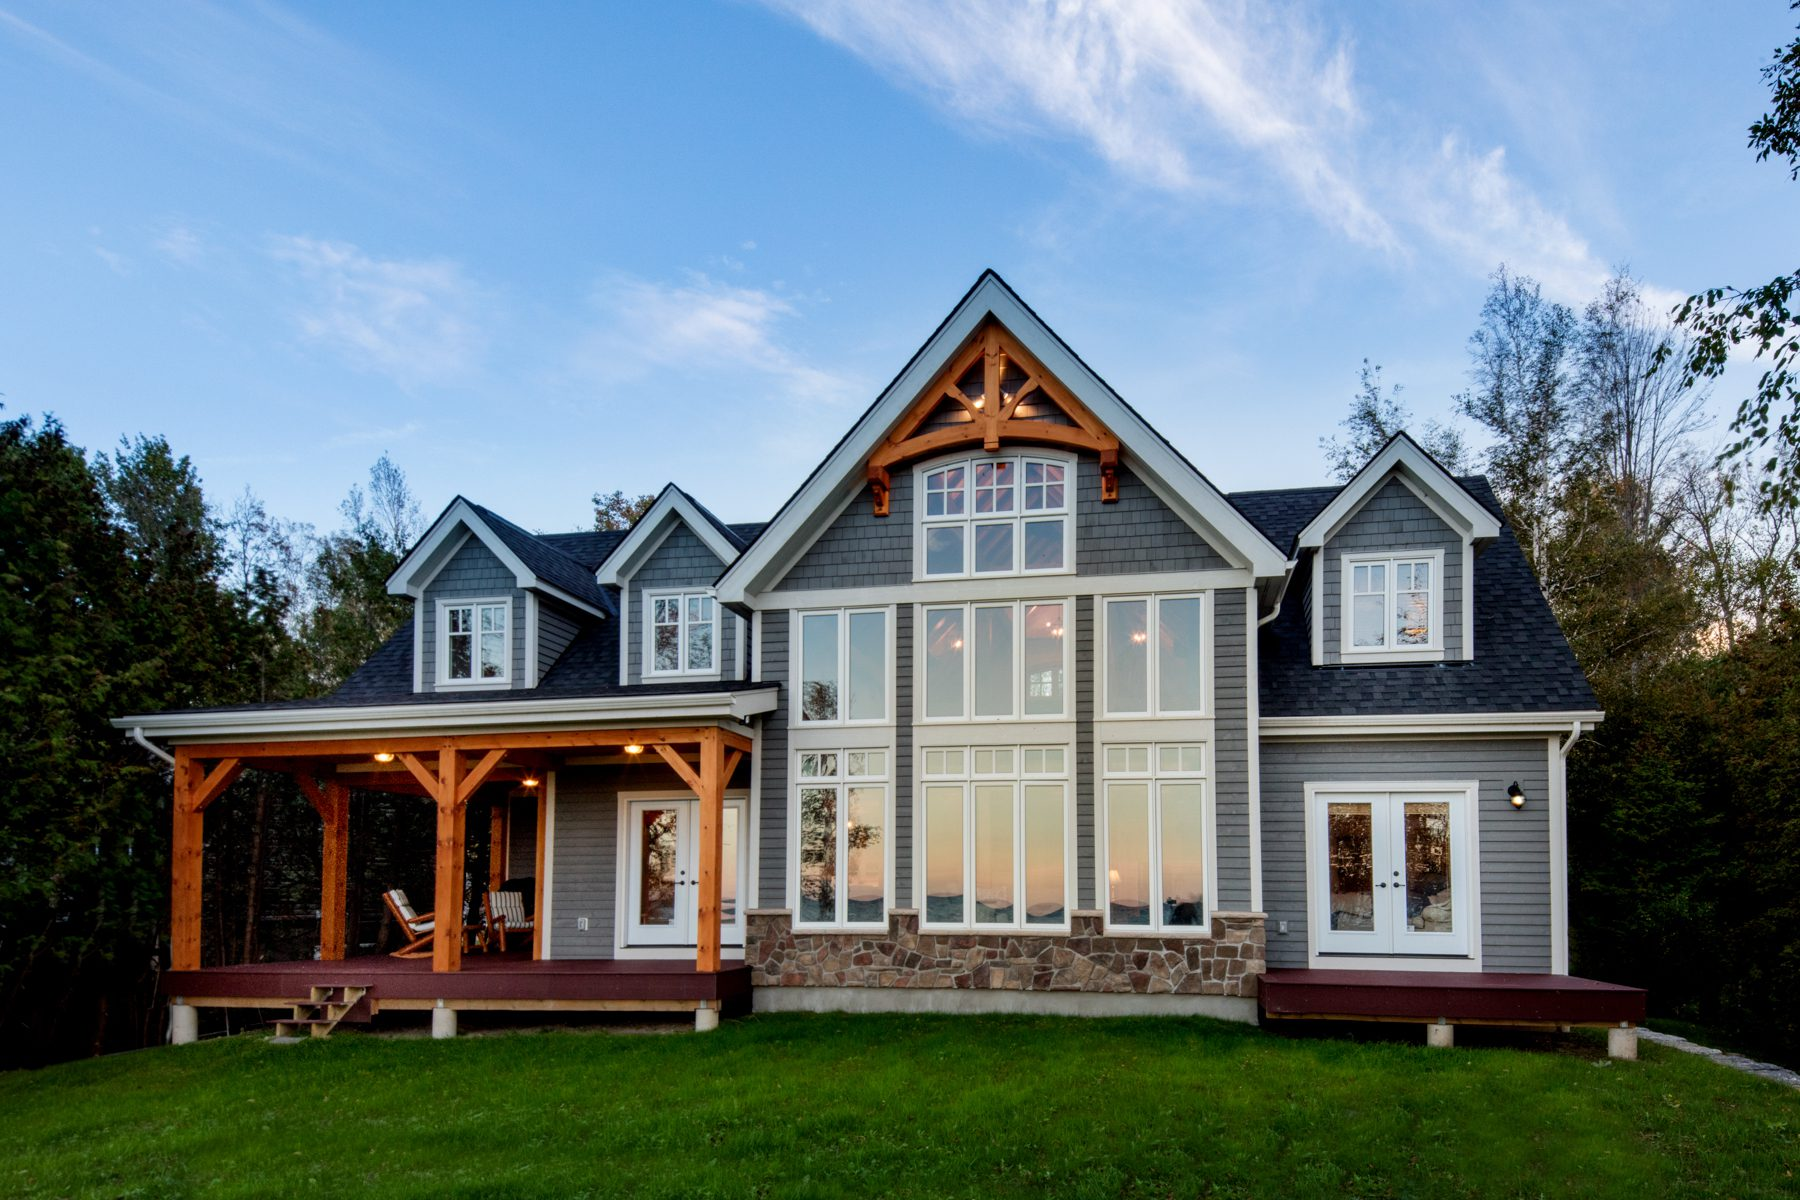 Normerica Timber Frame, Exterior, Cottage, Backyard, Covered Porch, Rear View, Lake View